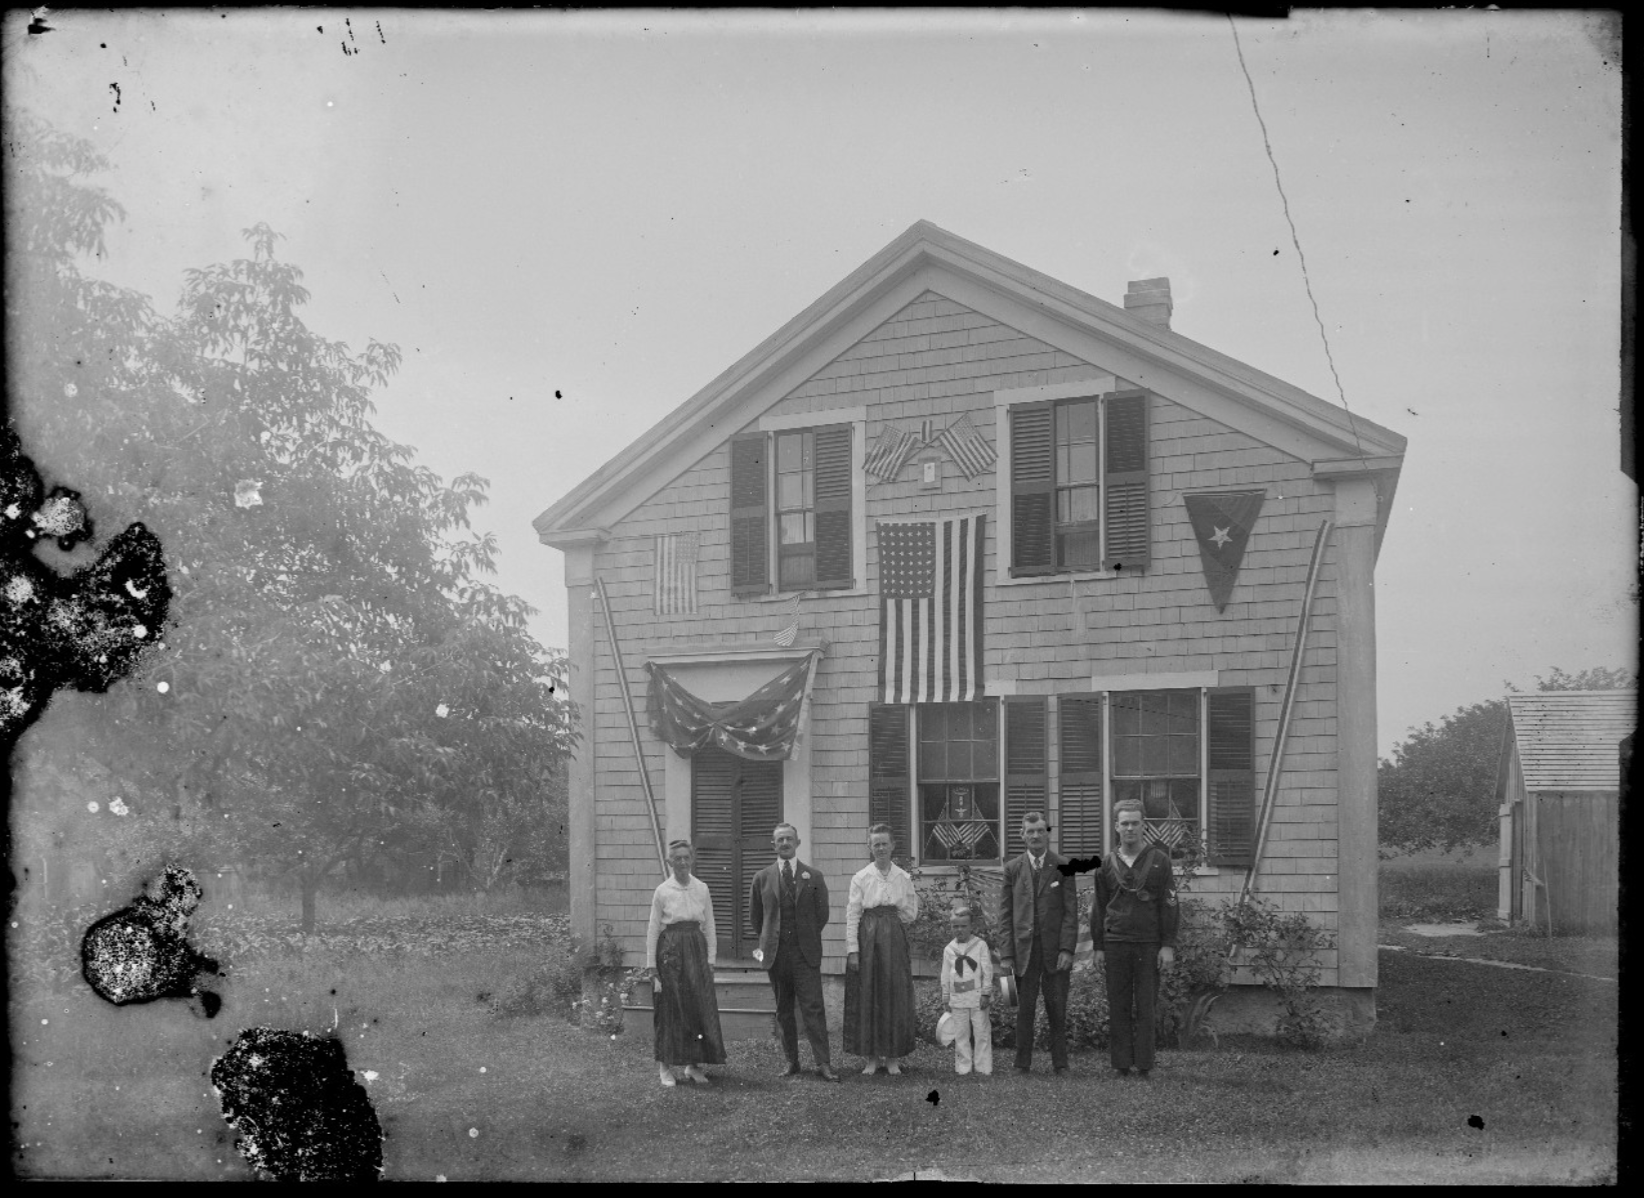 4th of July waiting for the parade, 1908. Photo by Edward Lee Luce